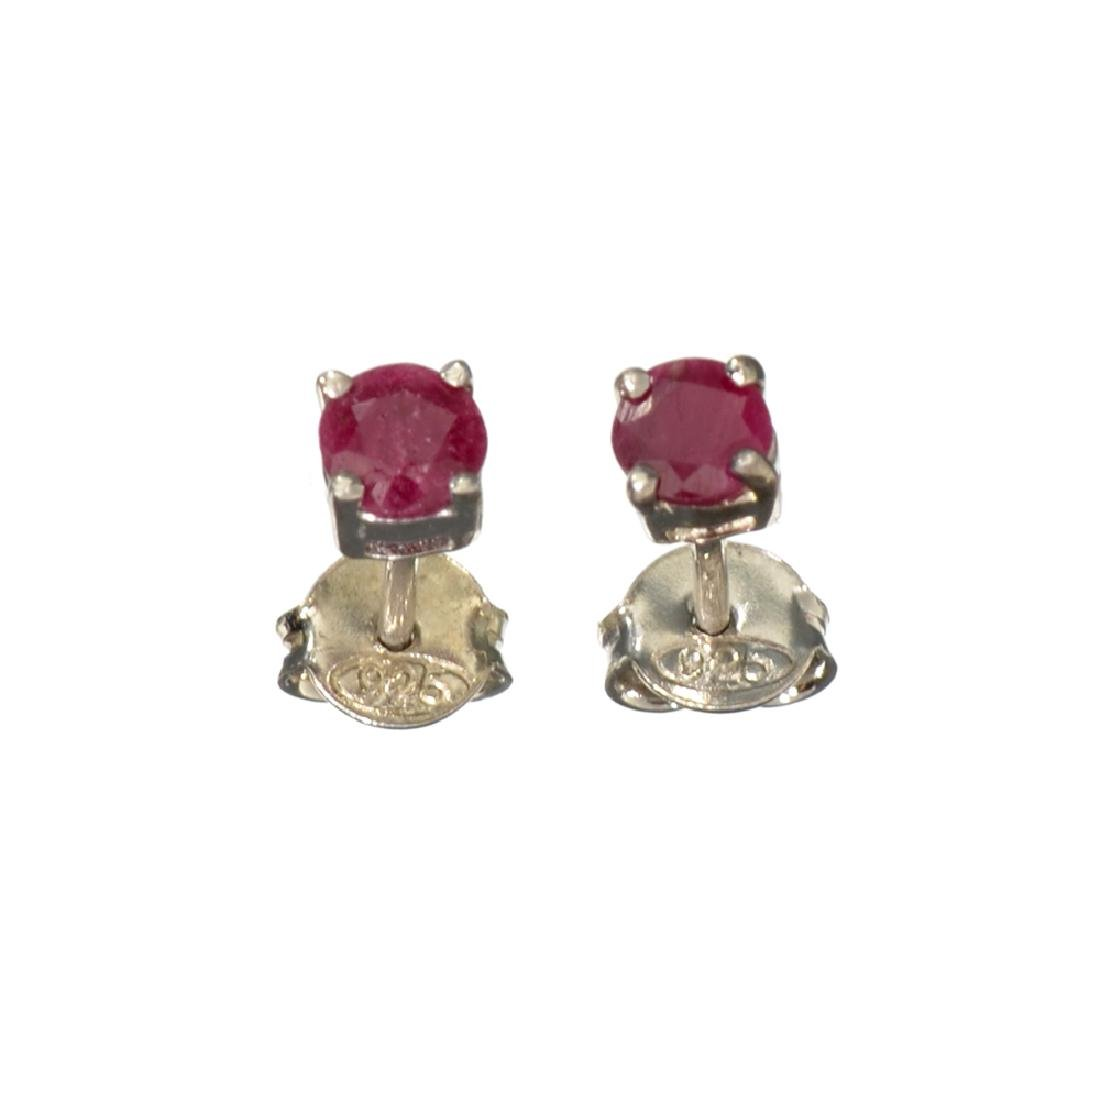 APP: 0.2k Fine Jewelry 0.70CT Round Cut Ruby And